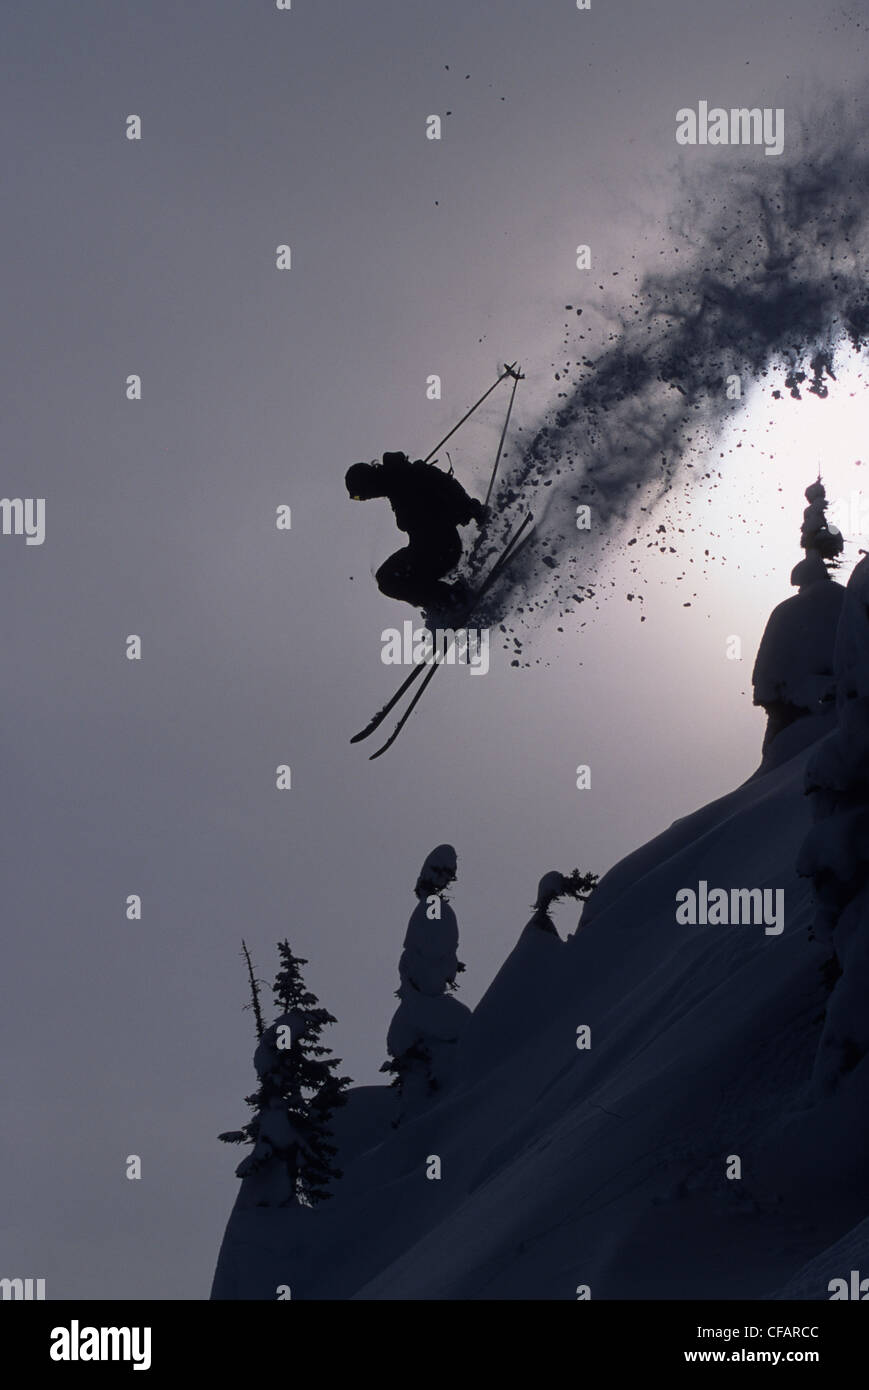 Airborne skier at Kicking Horse Resort, Golden, British Columbia, Canada - Stock Image